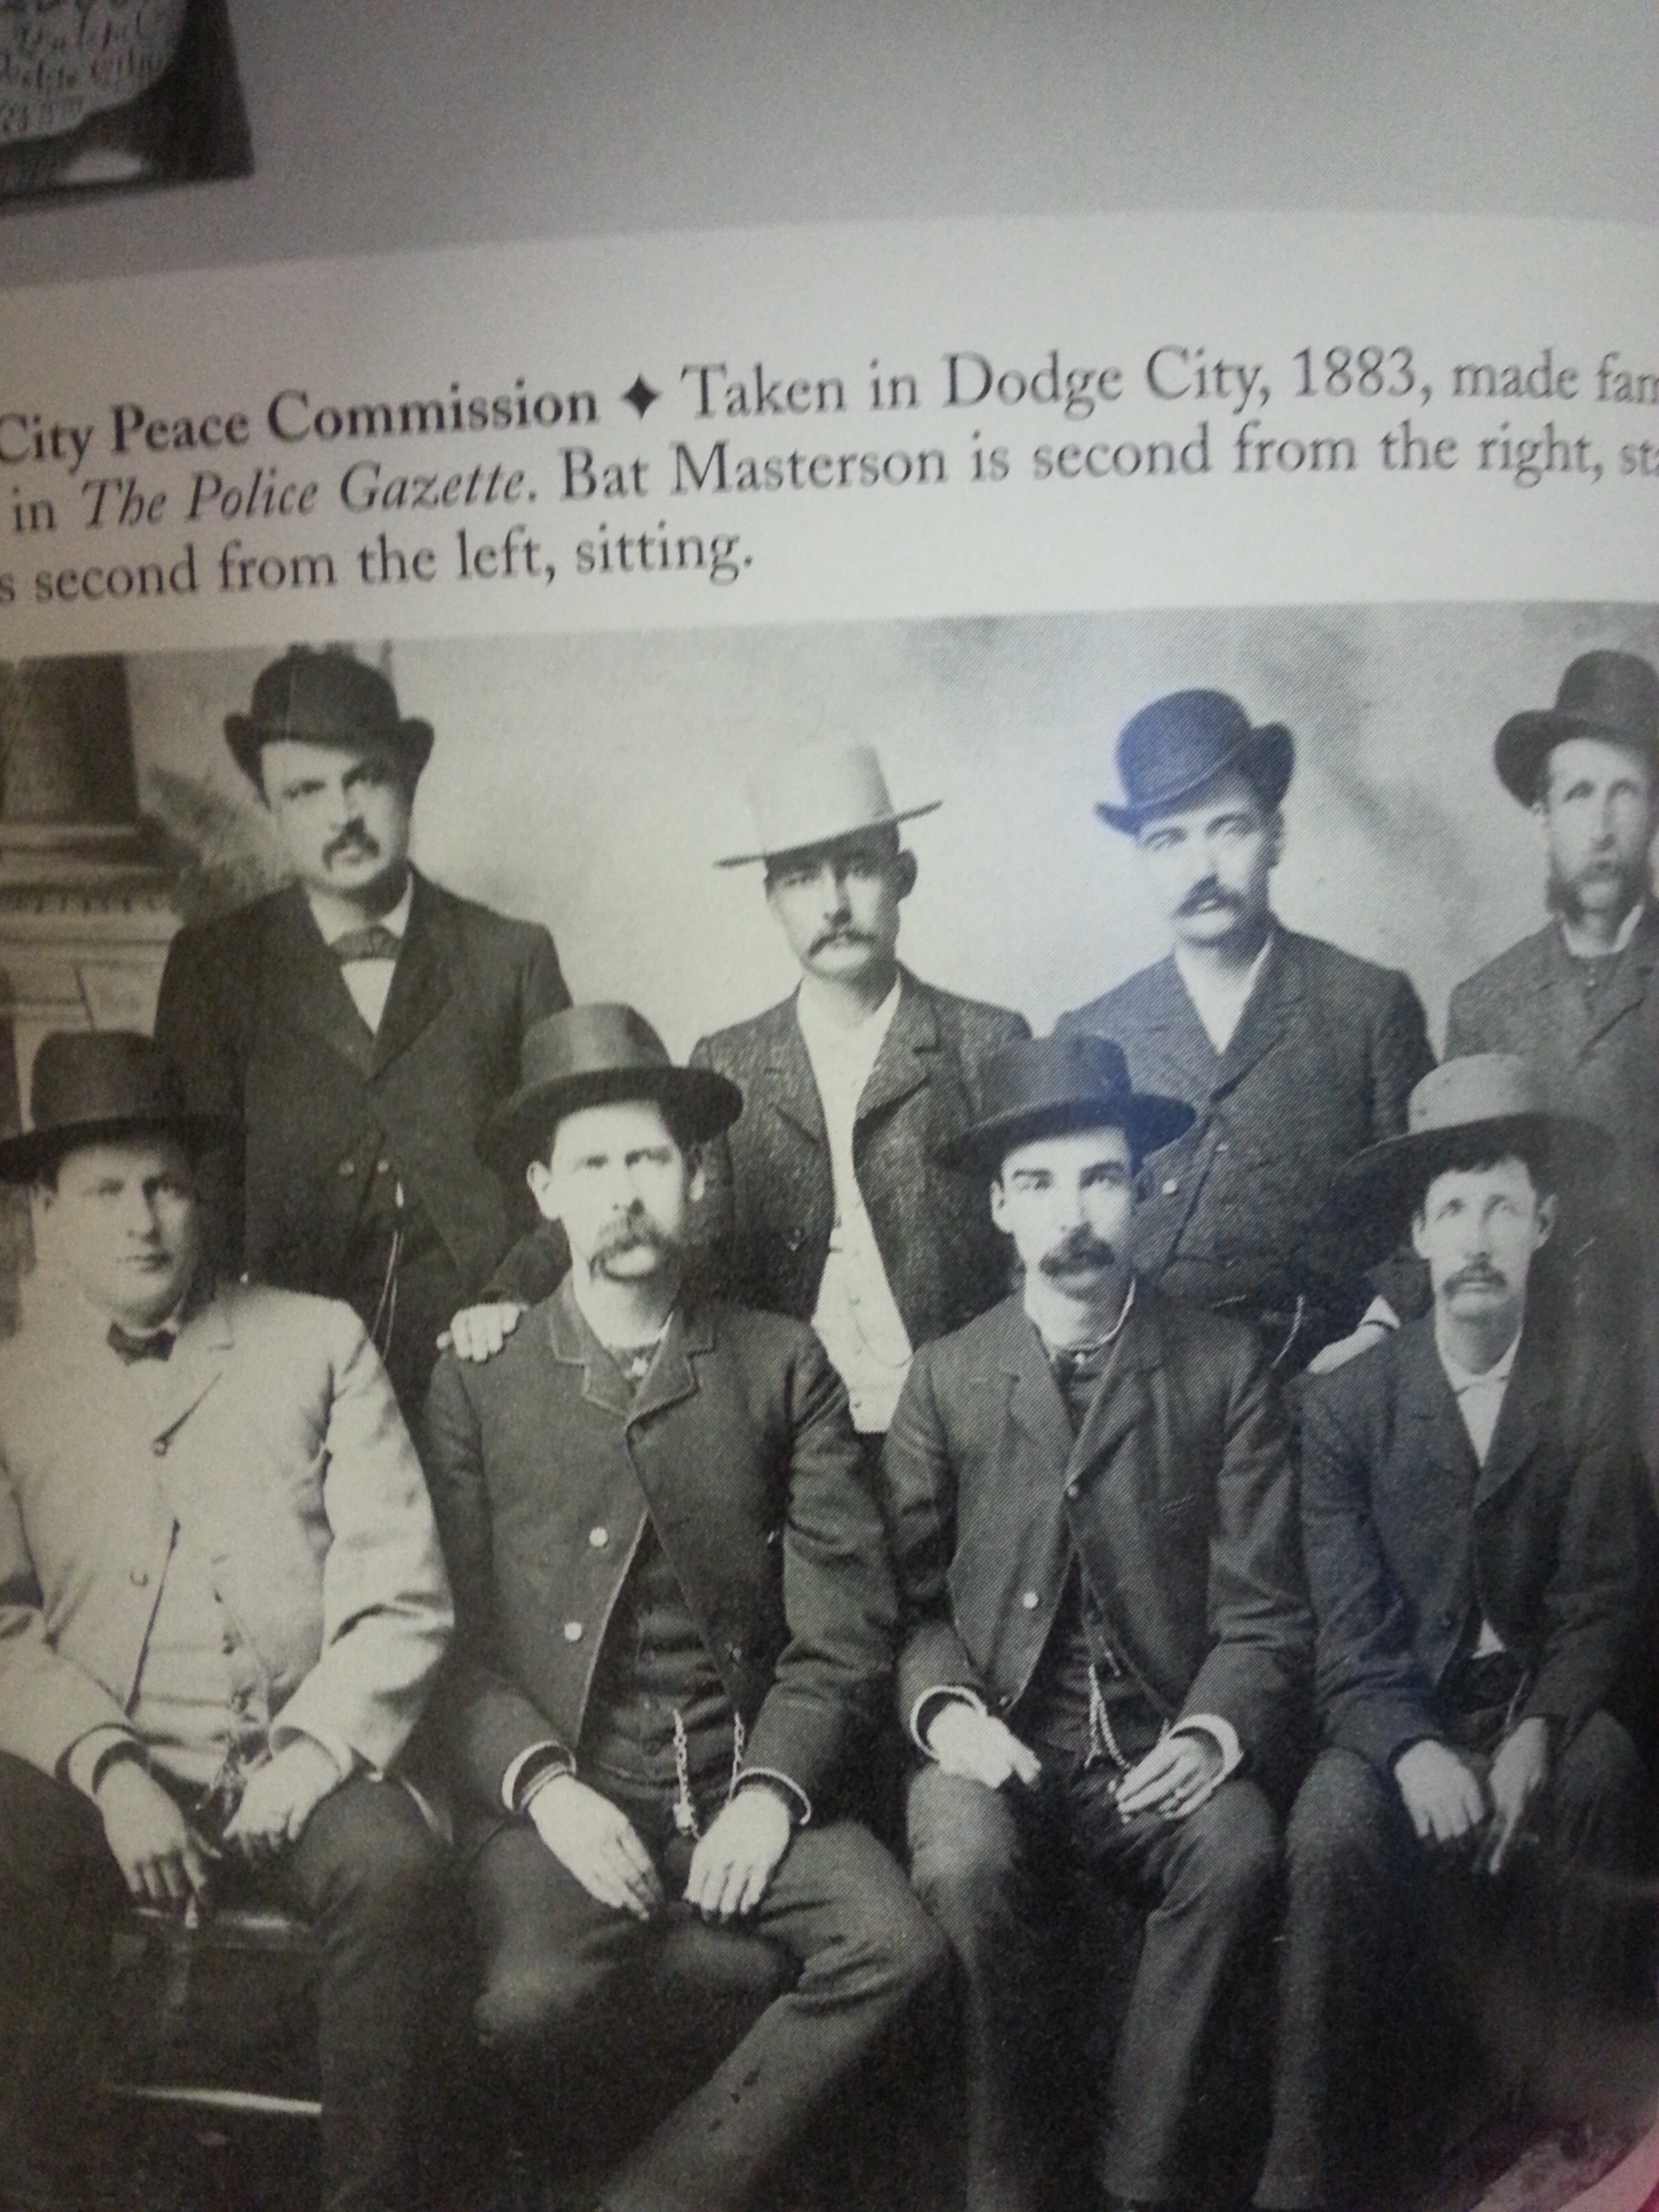 Wyatt Earp and The Dodge City Commission